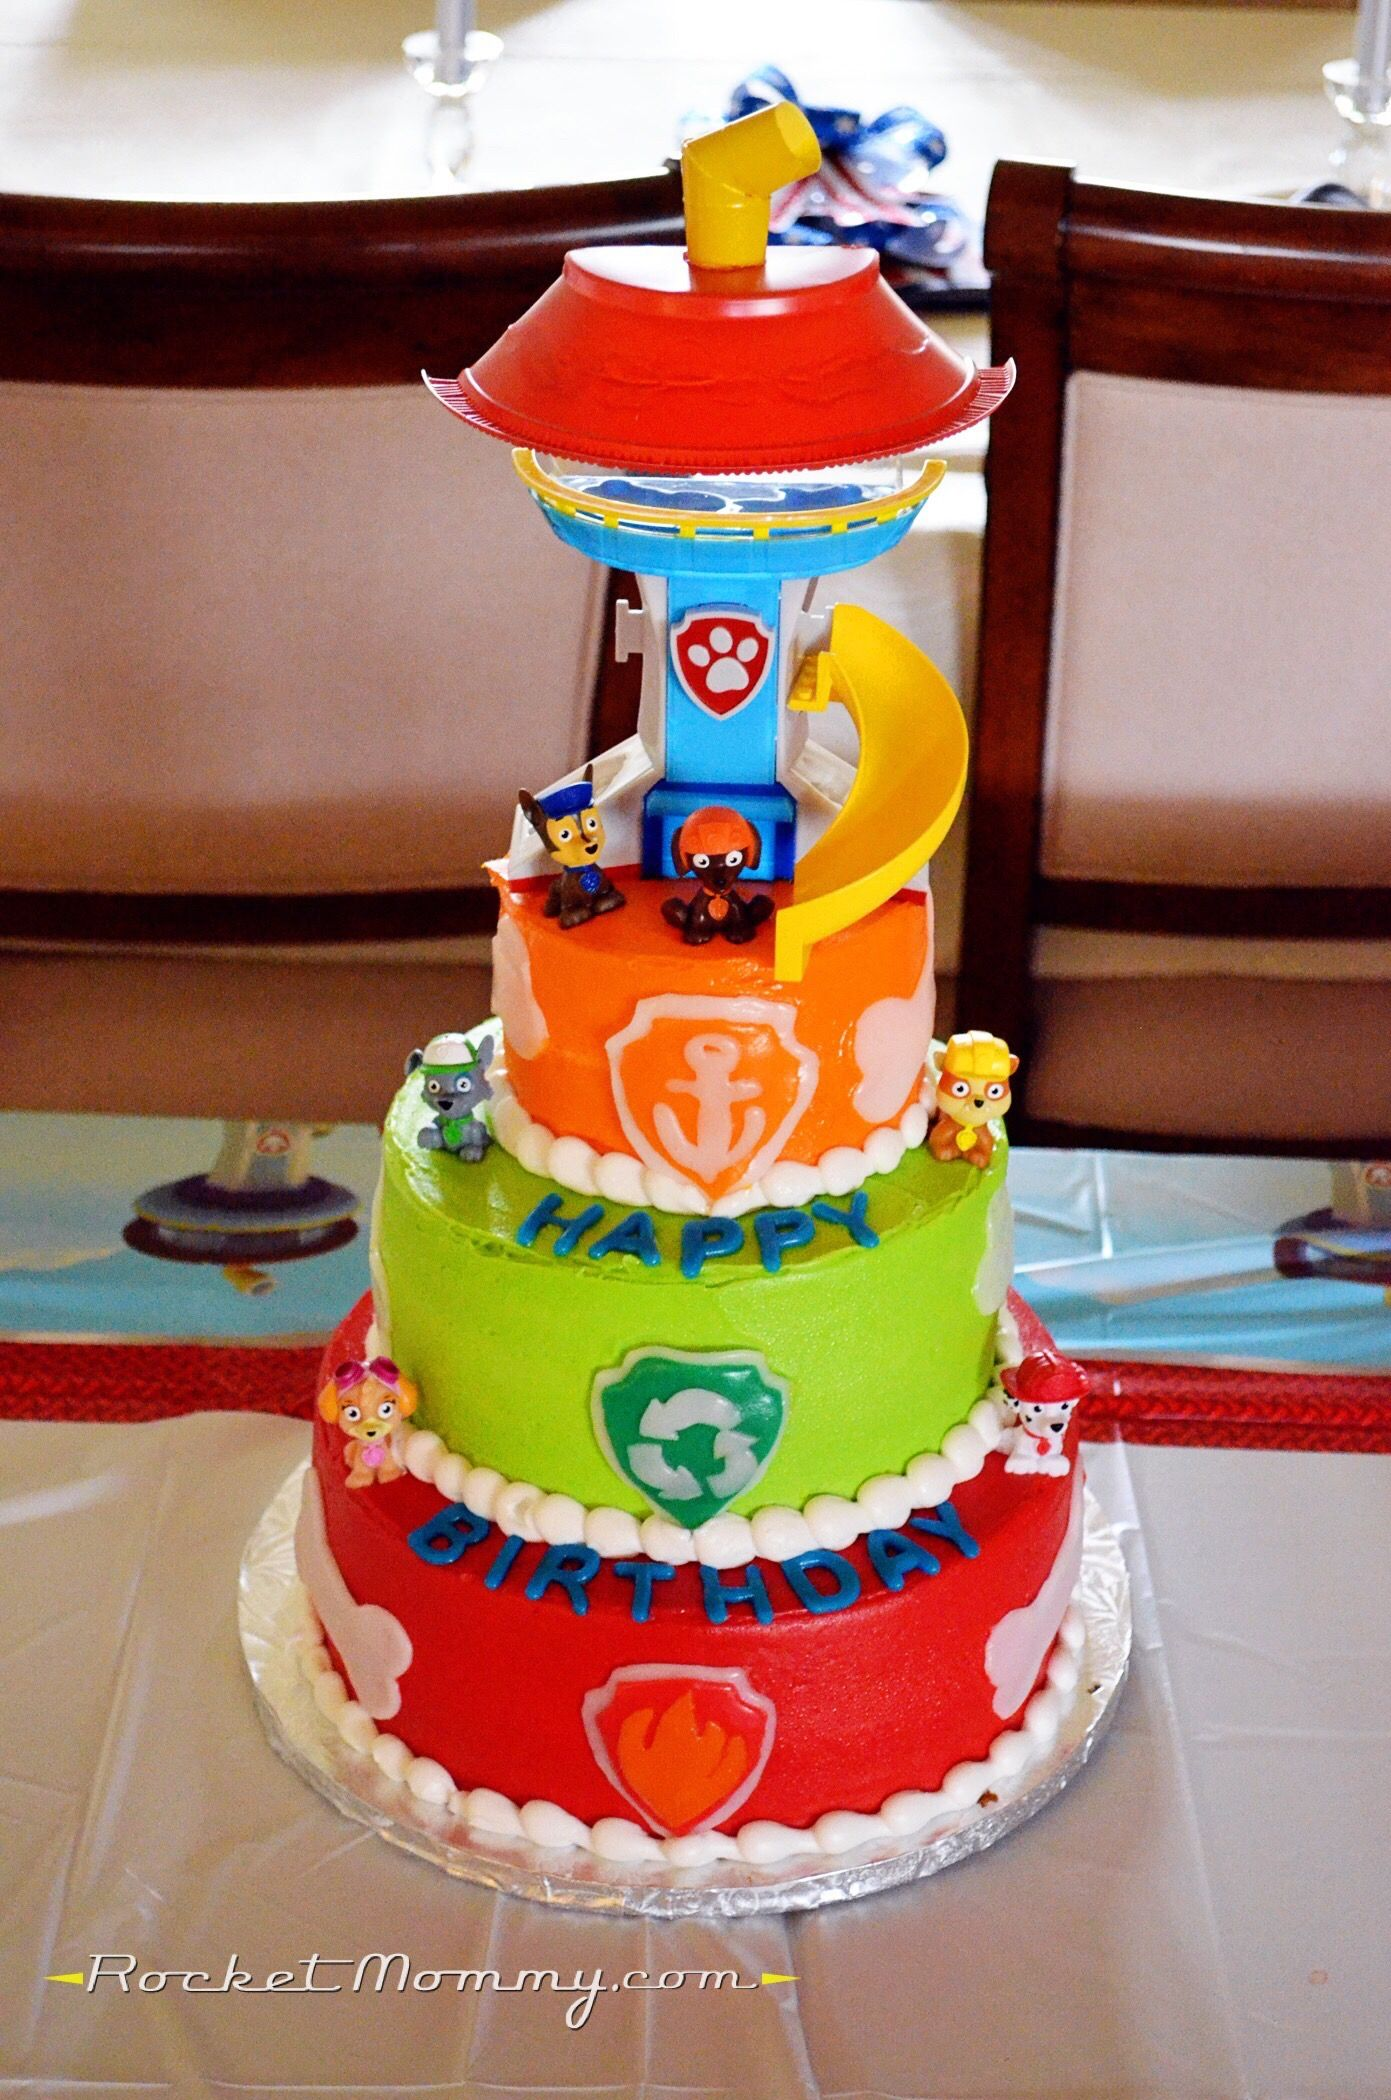 A Few Diy Details For A Paw Patrol Party Customized Store